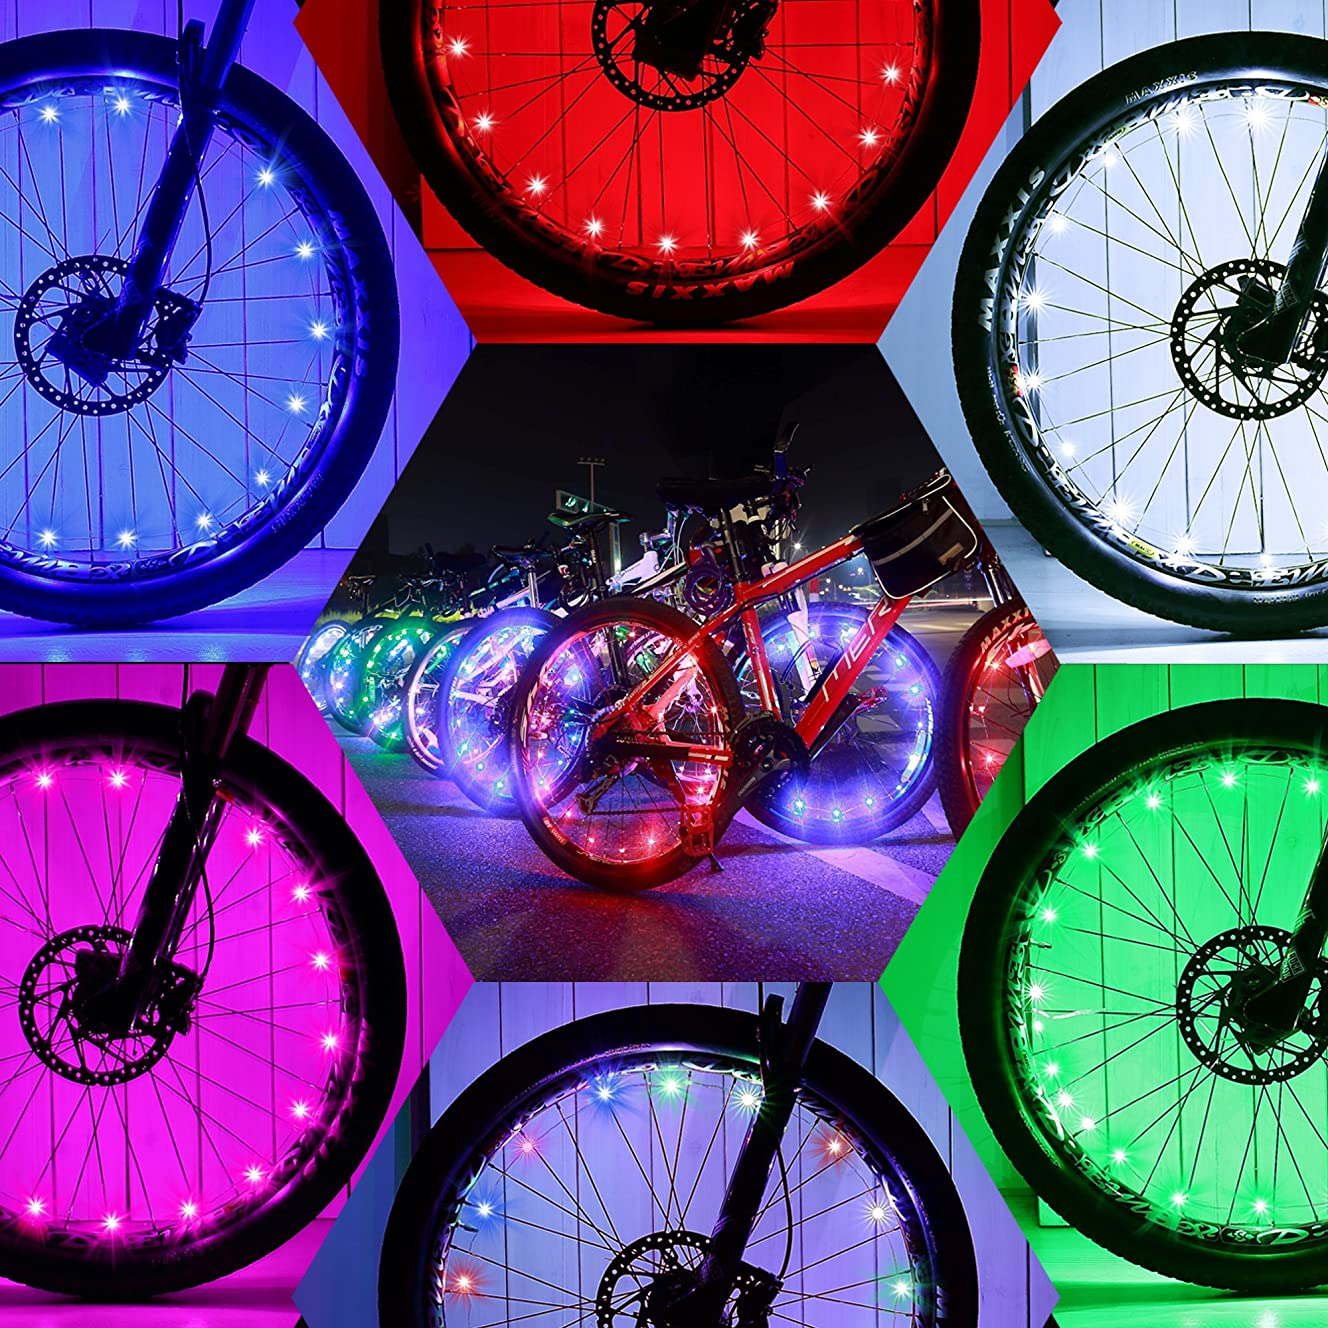 DAWAY Led Bike Wheel Light - A01 Waterproof Bright Bicycle Tire Lights Strip, Safety Spoke Lights, Cool Kids Boys Girls Bycicle Accessories, Light Up Wheels, with Battery, 1 Year Warranty